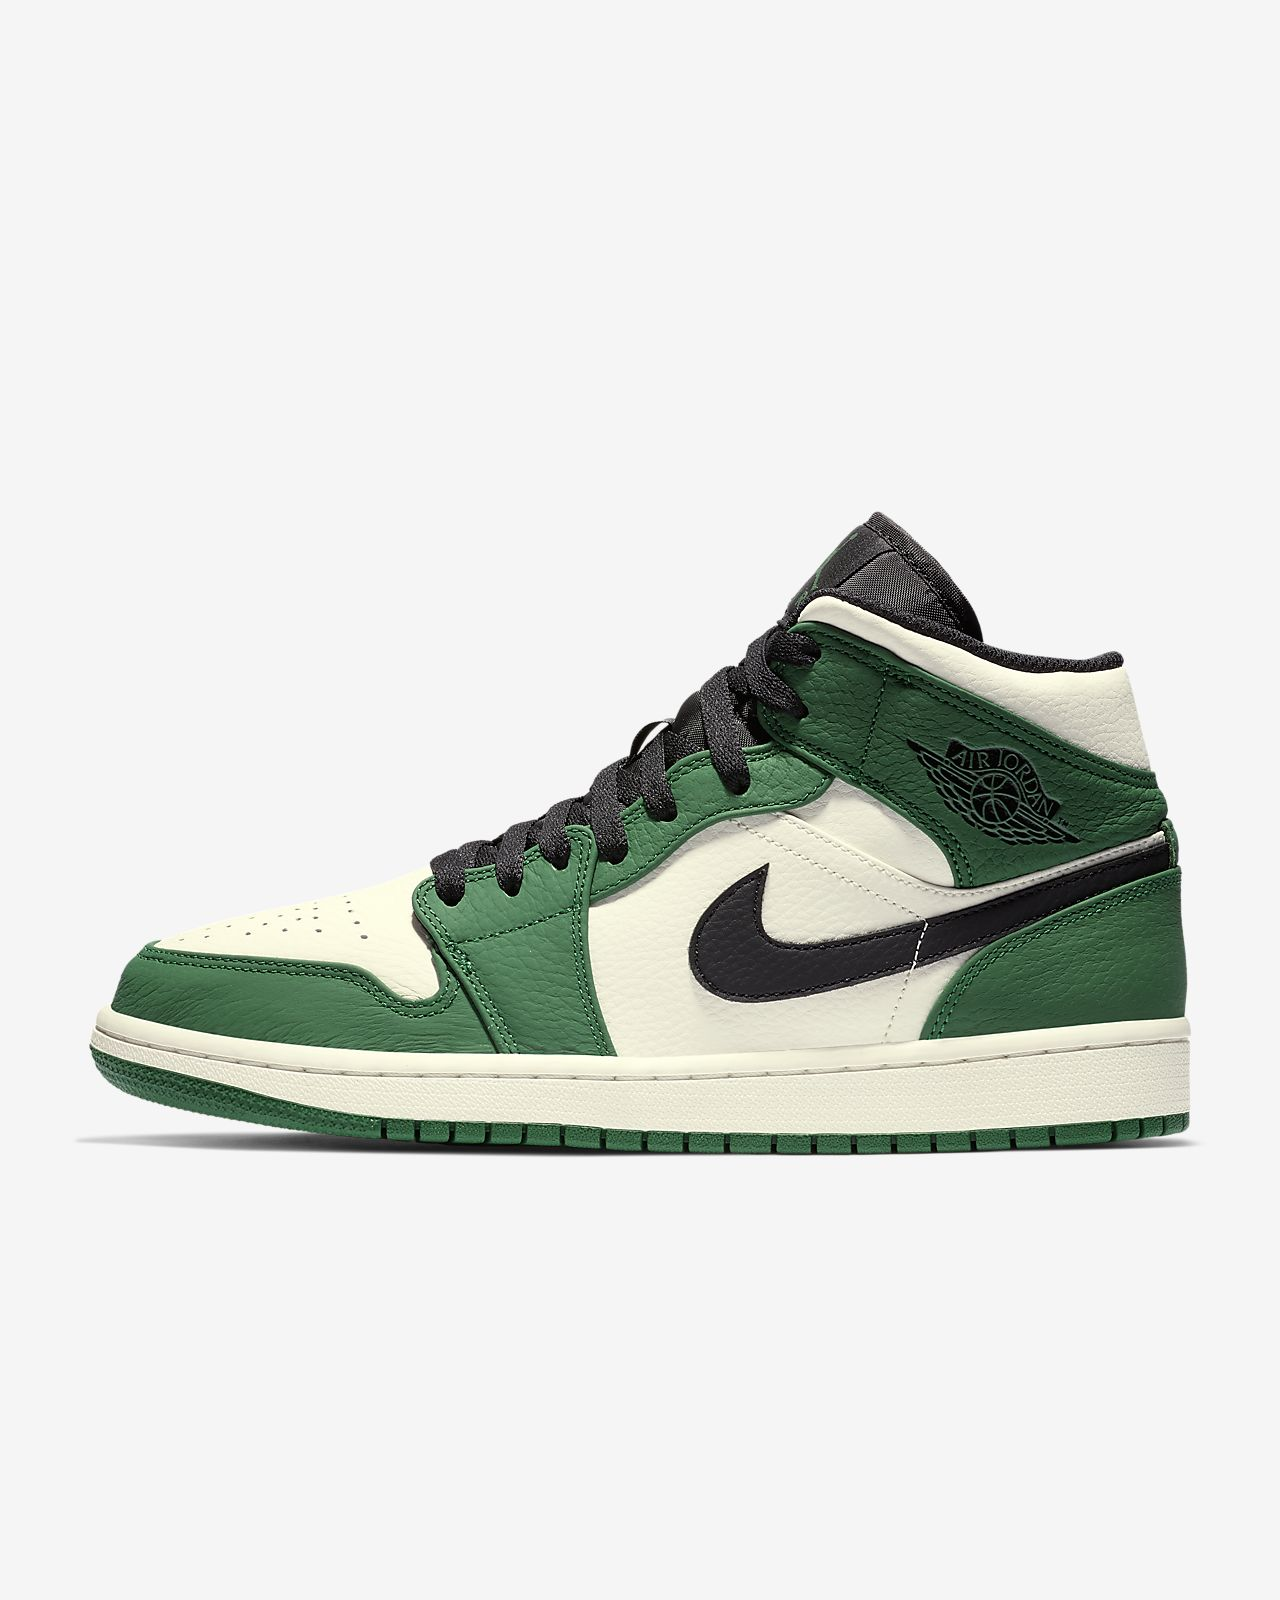 9a247c83b4c Air Jordan 1 Mid SE Men s Shoe. Nike.com